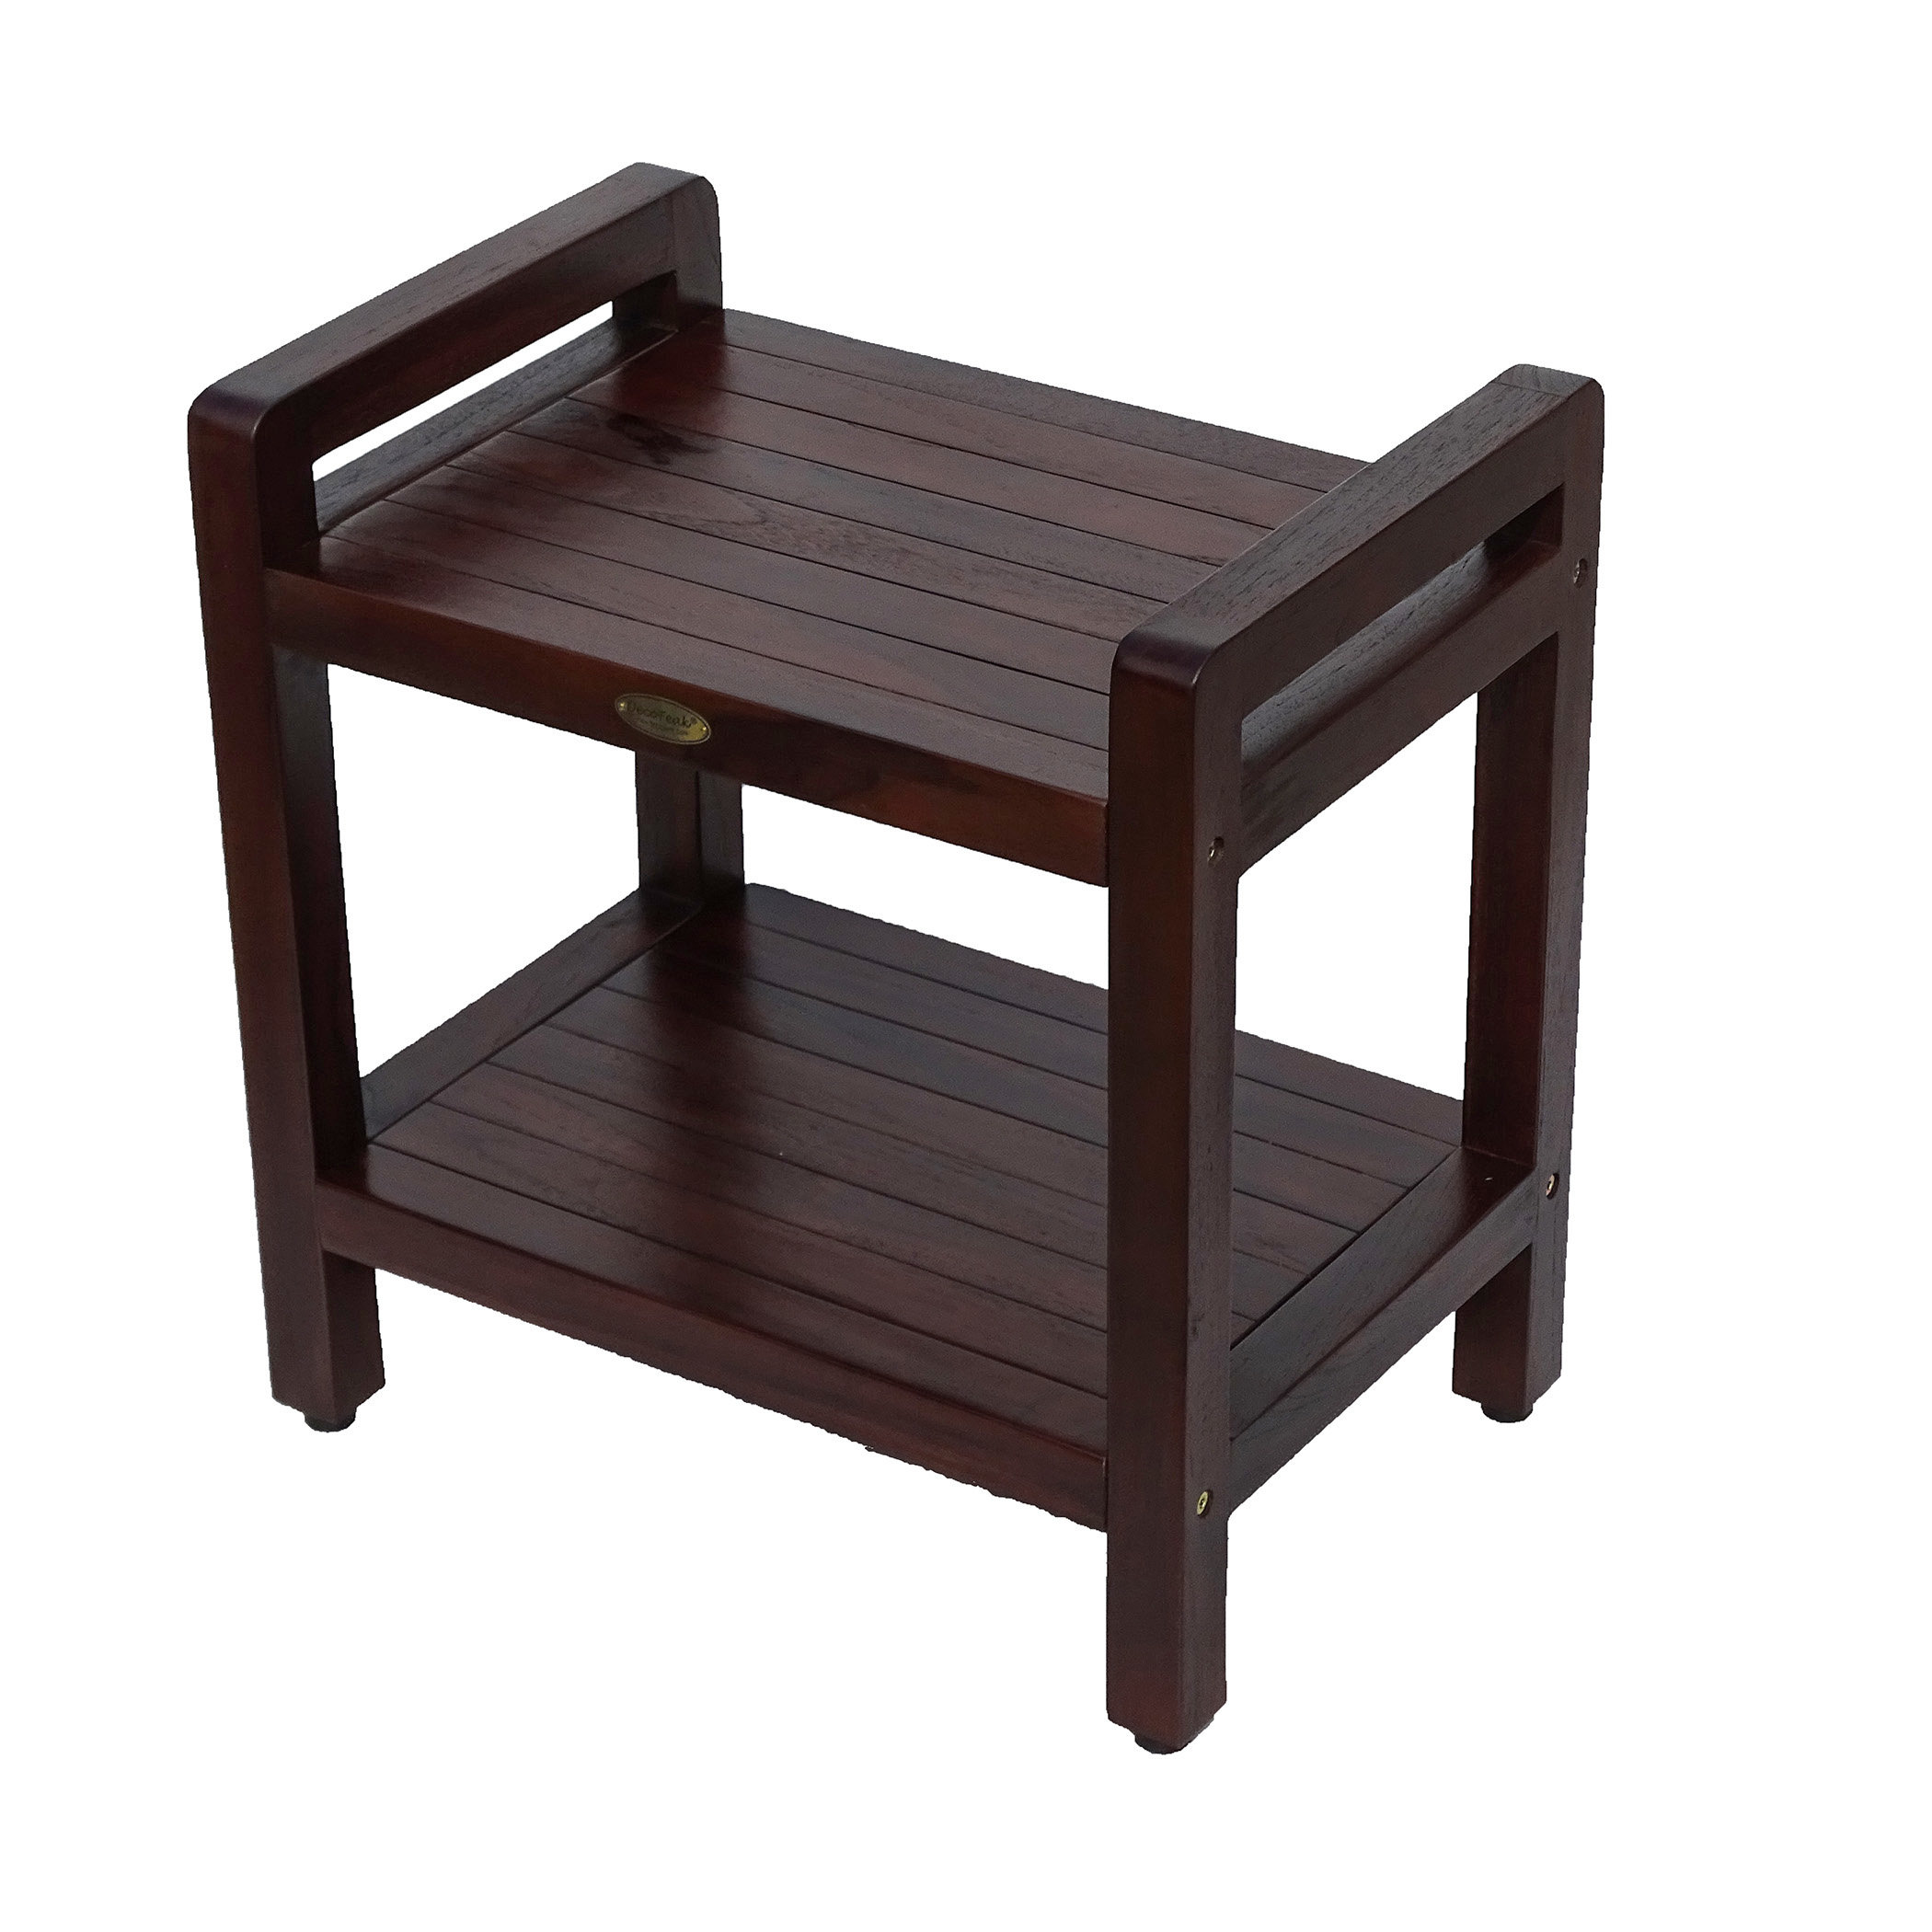 decoteak outdoors teak side table reviews outdoor diy furniture legs deep console pier one imports locations cloth runners accent lamps contemporary target wicker chairs